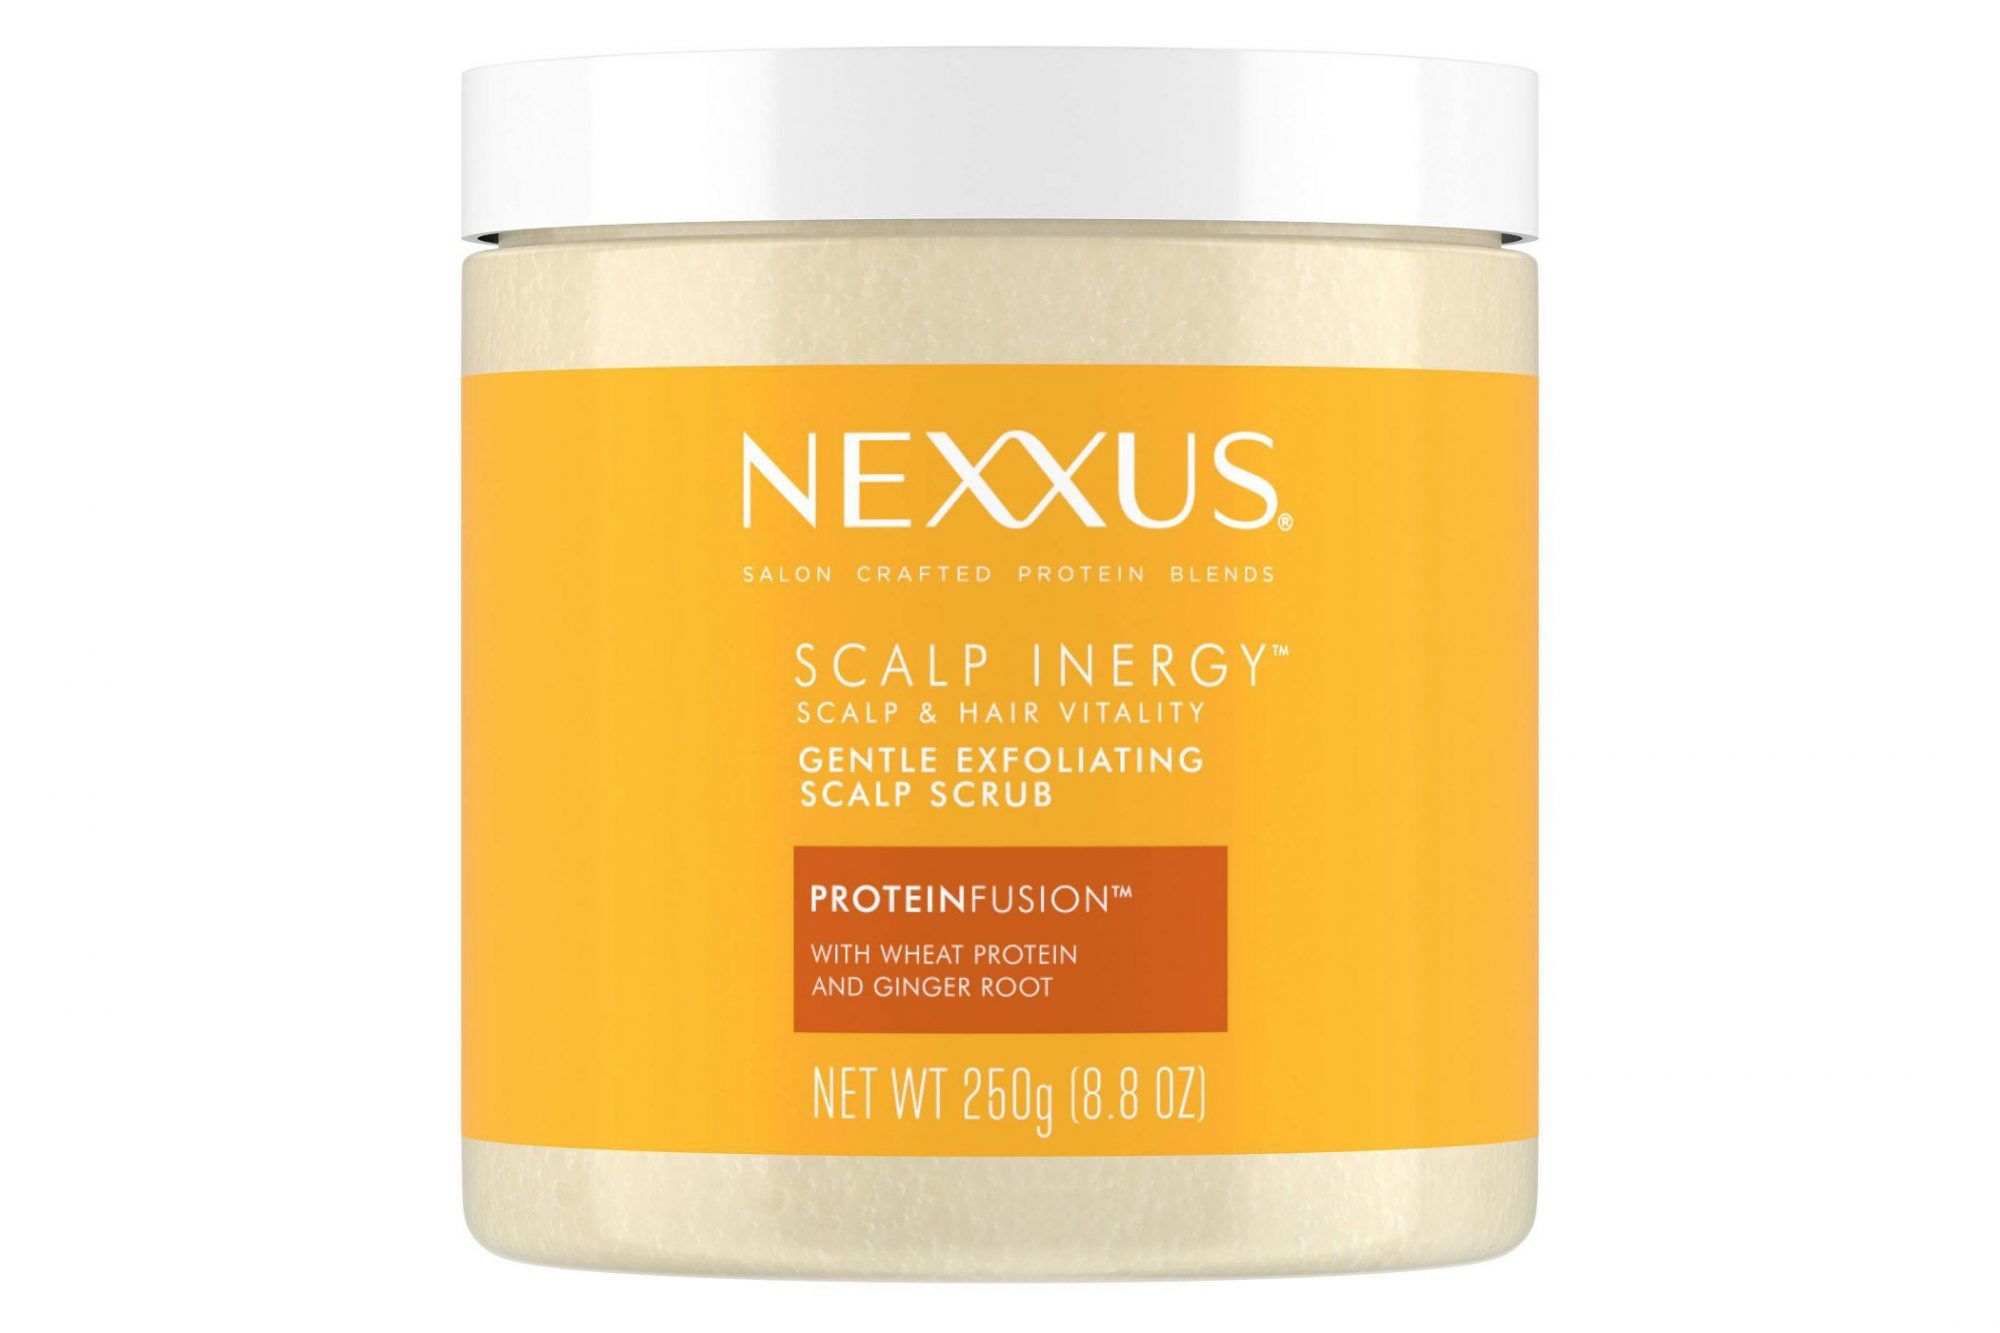 nexxus-scalp-scrub-hair.jpg